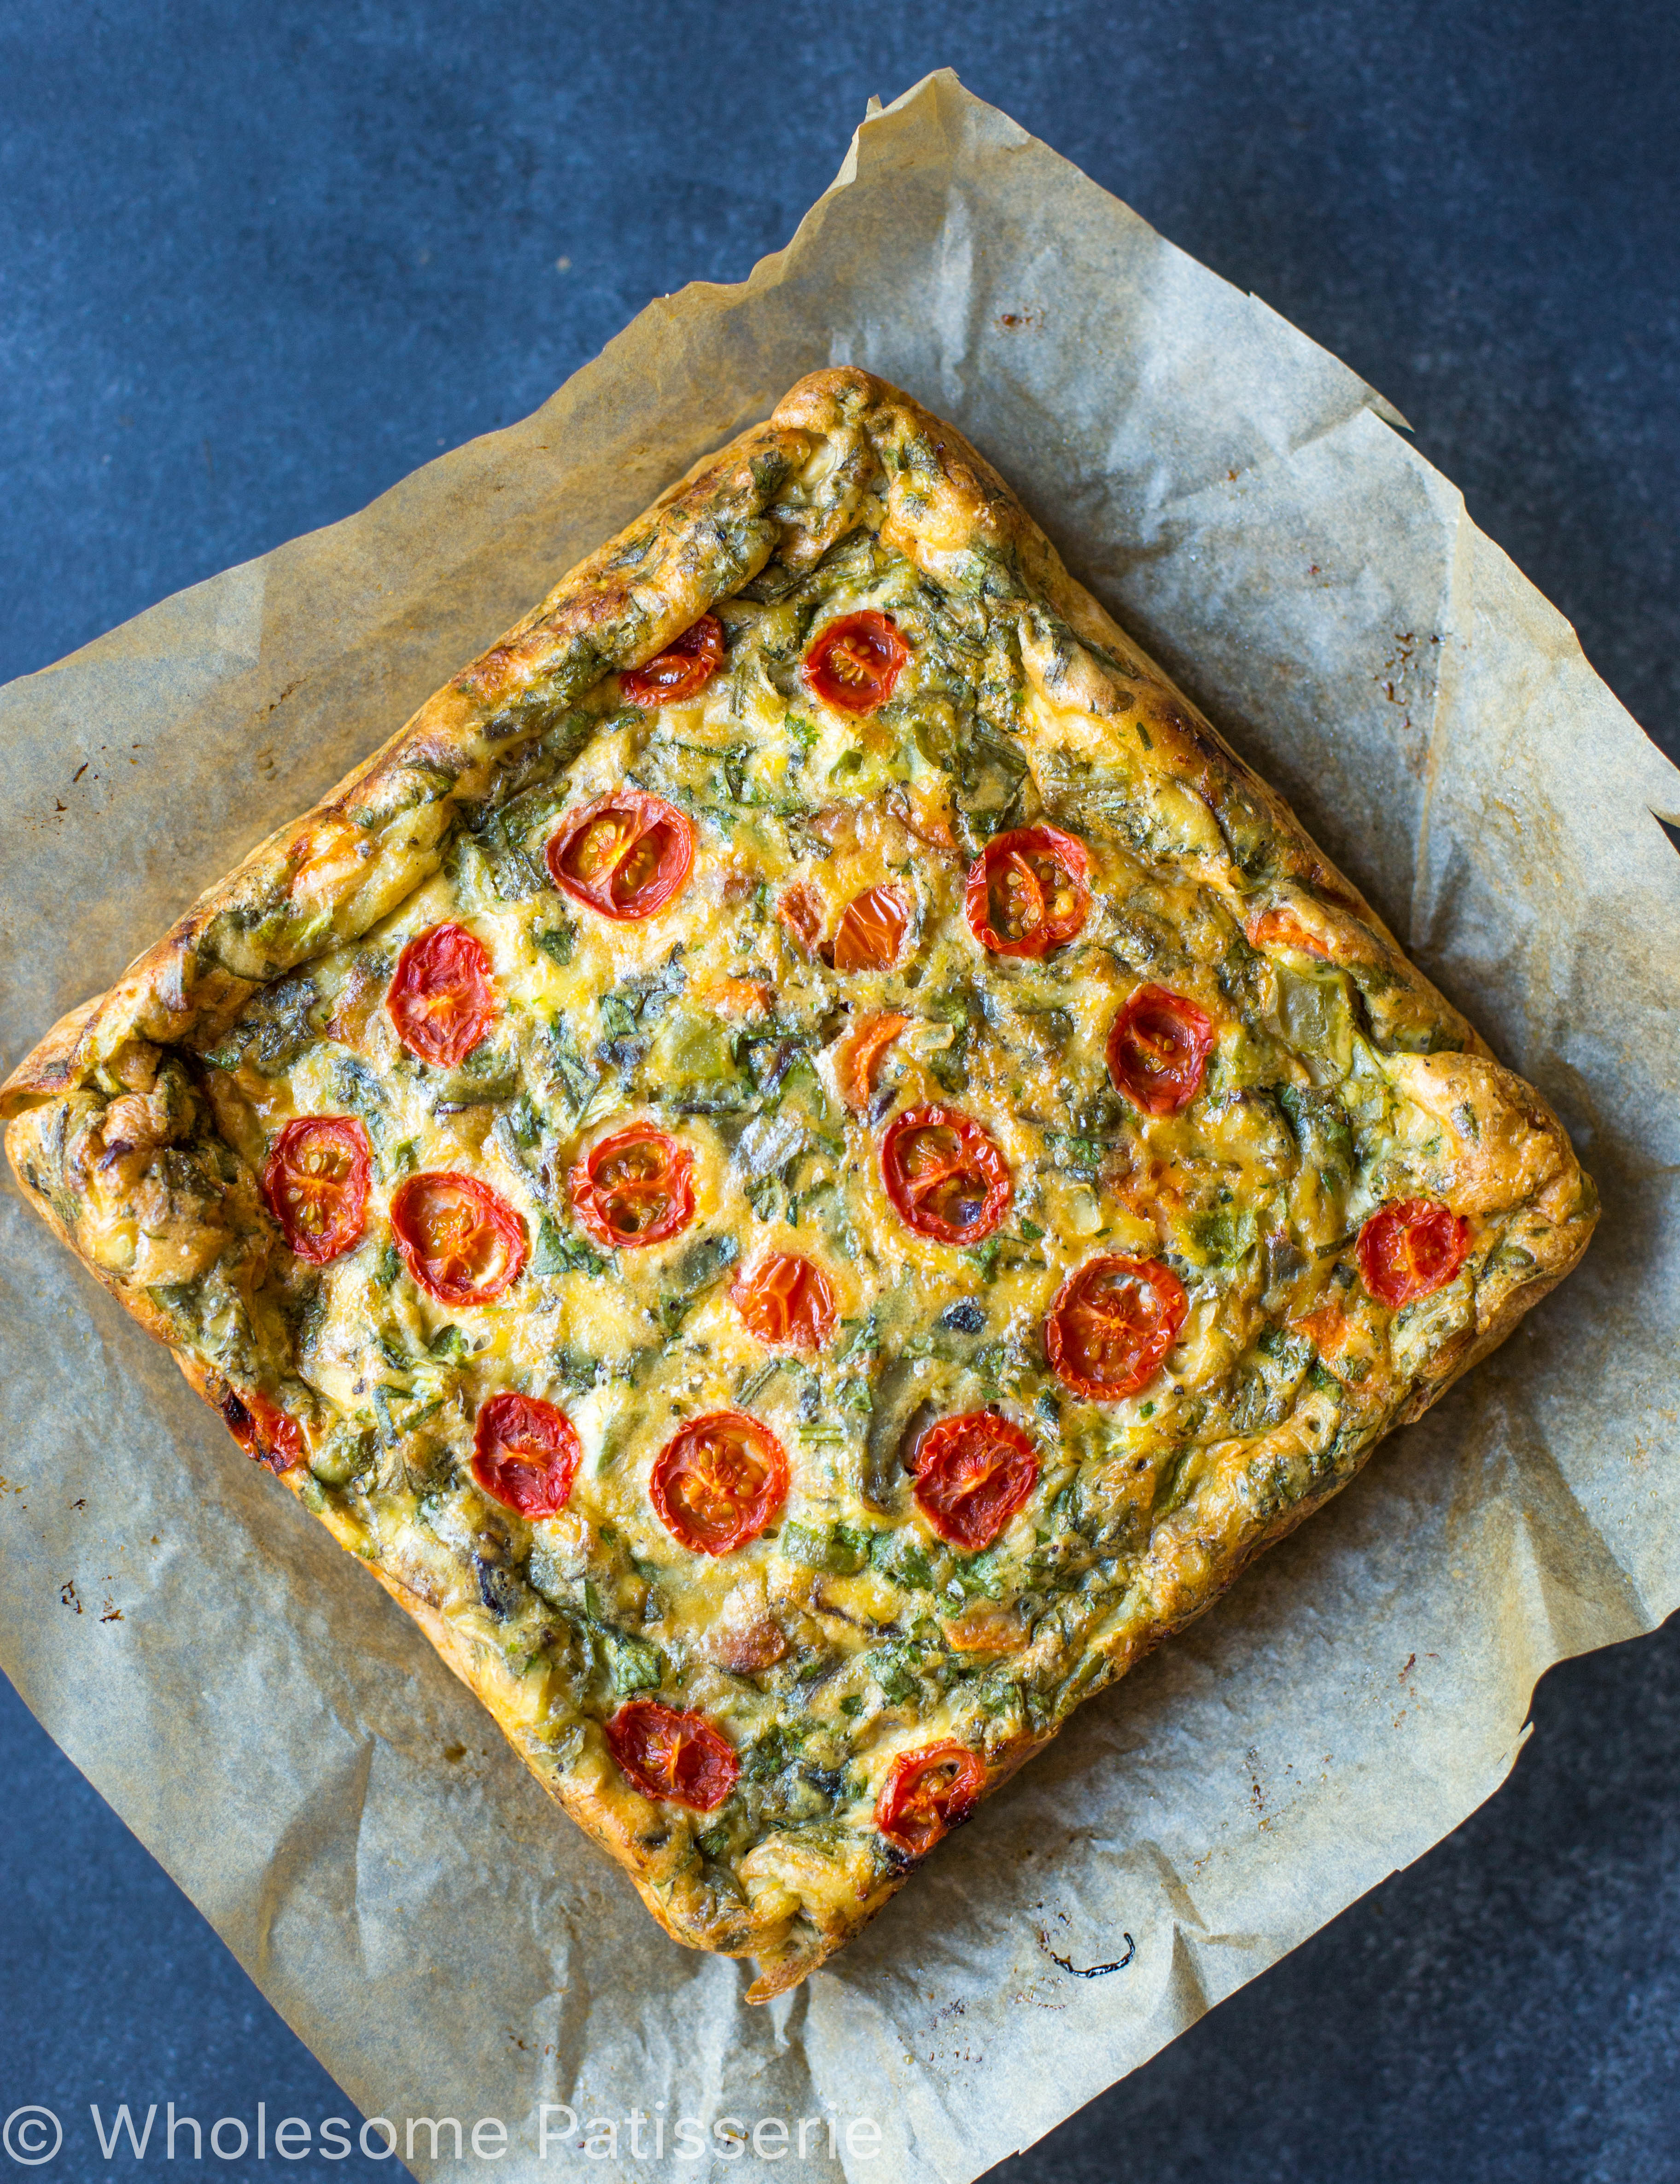 quiche-gluten-free-vegetable-quiche-simple-delicious-amazing-vegetarian